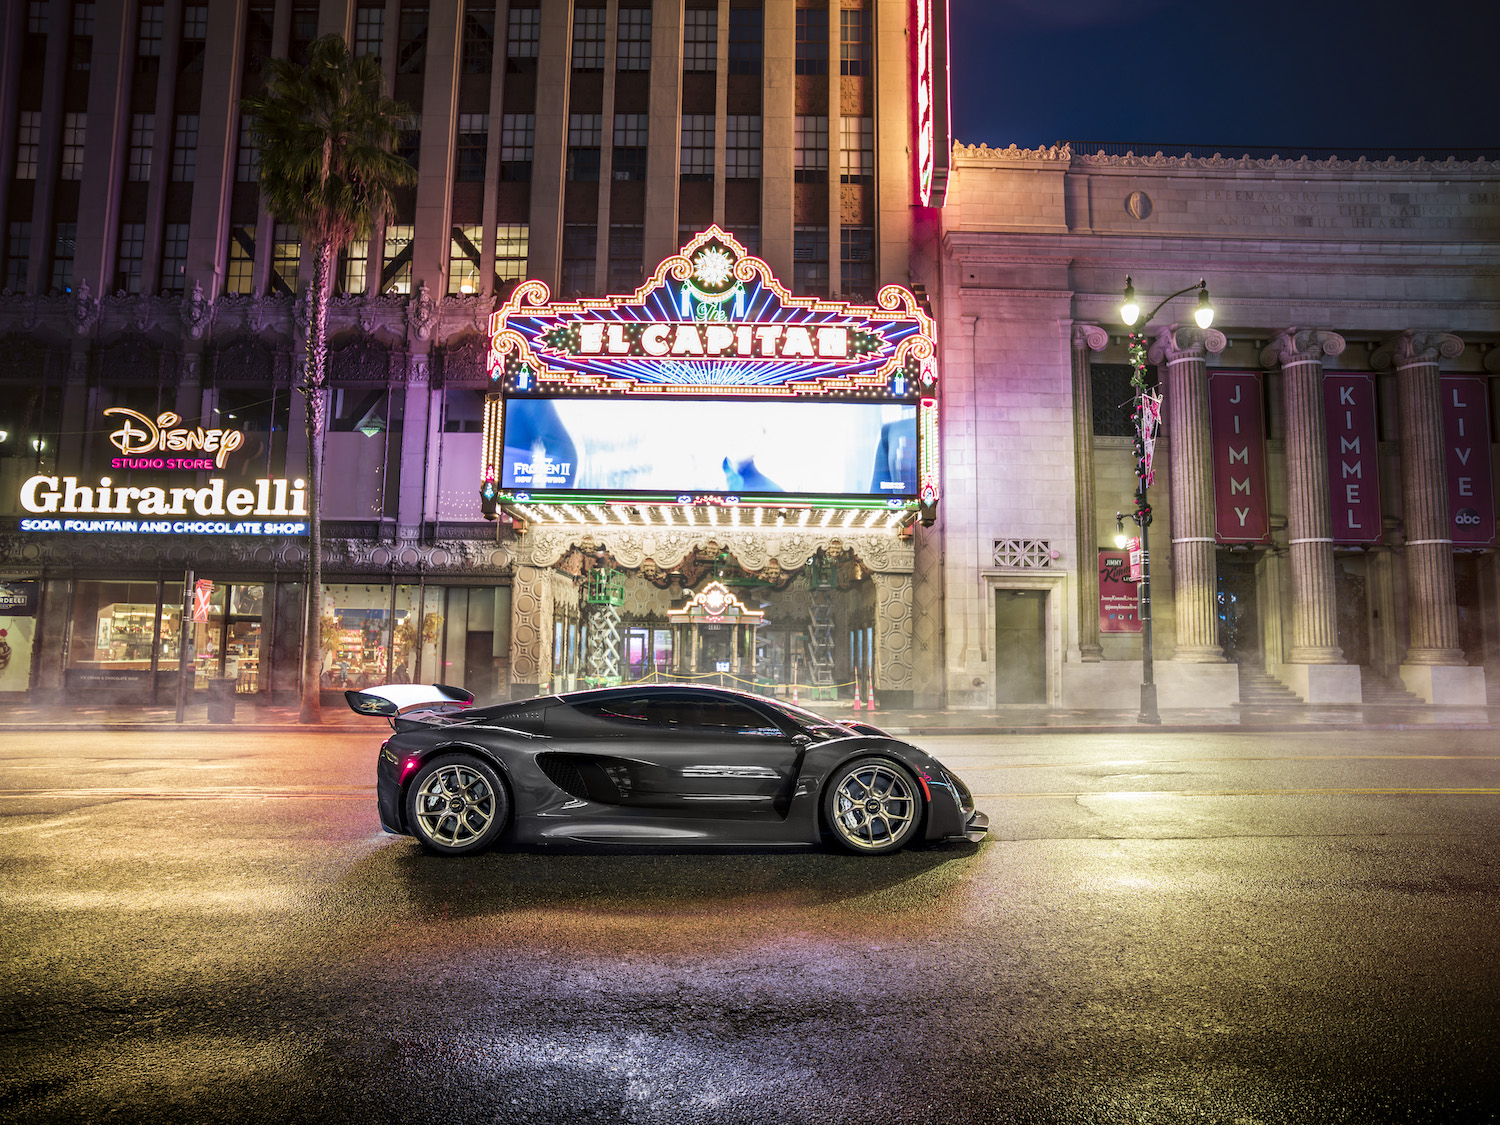 Czinger 21C 3D print hybrid supercar side-view in hollywood